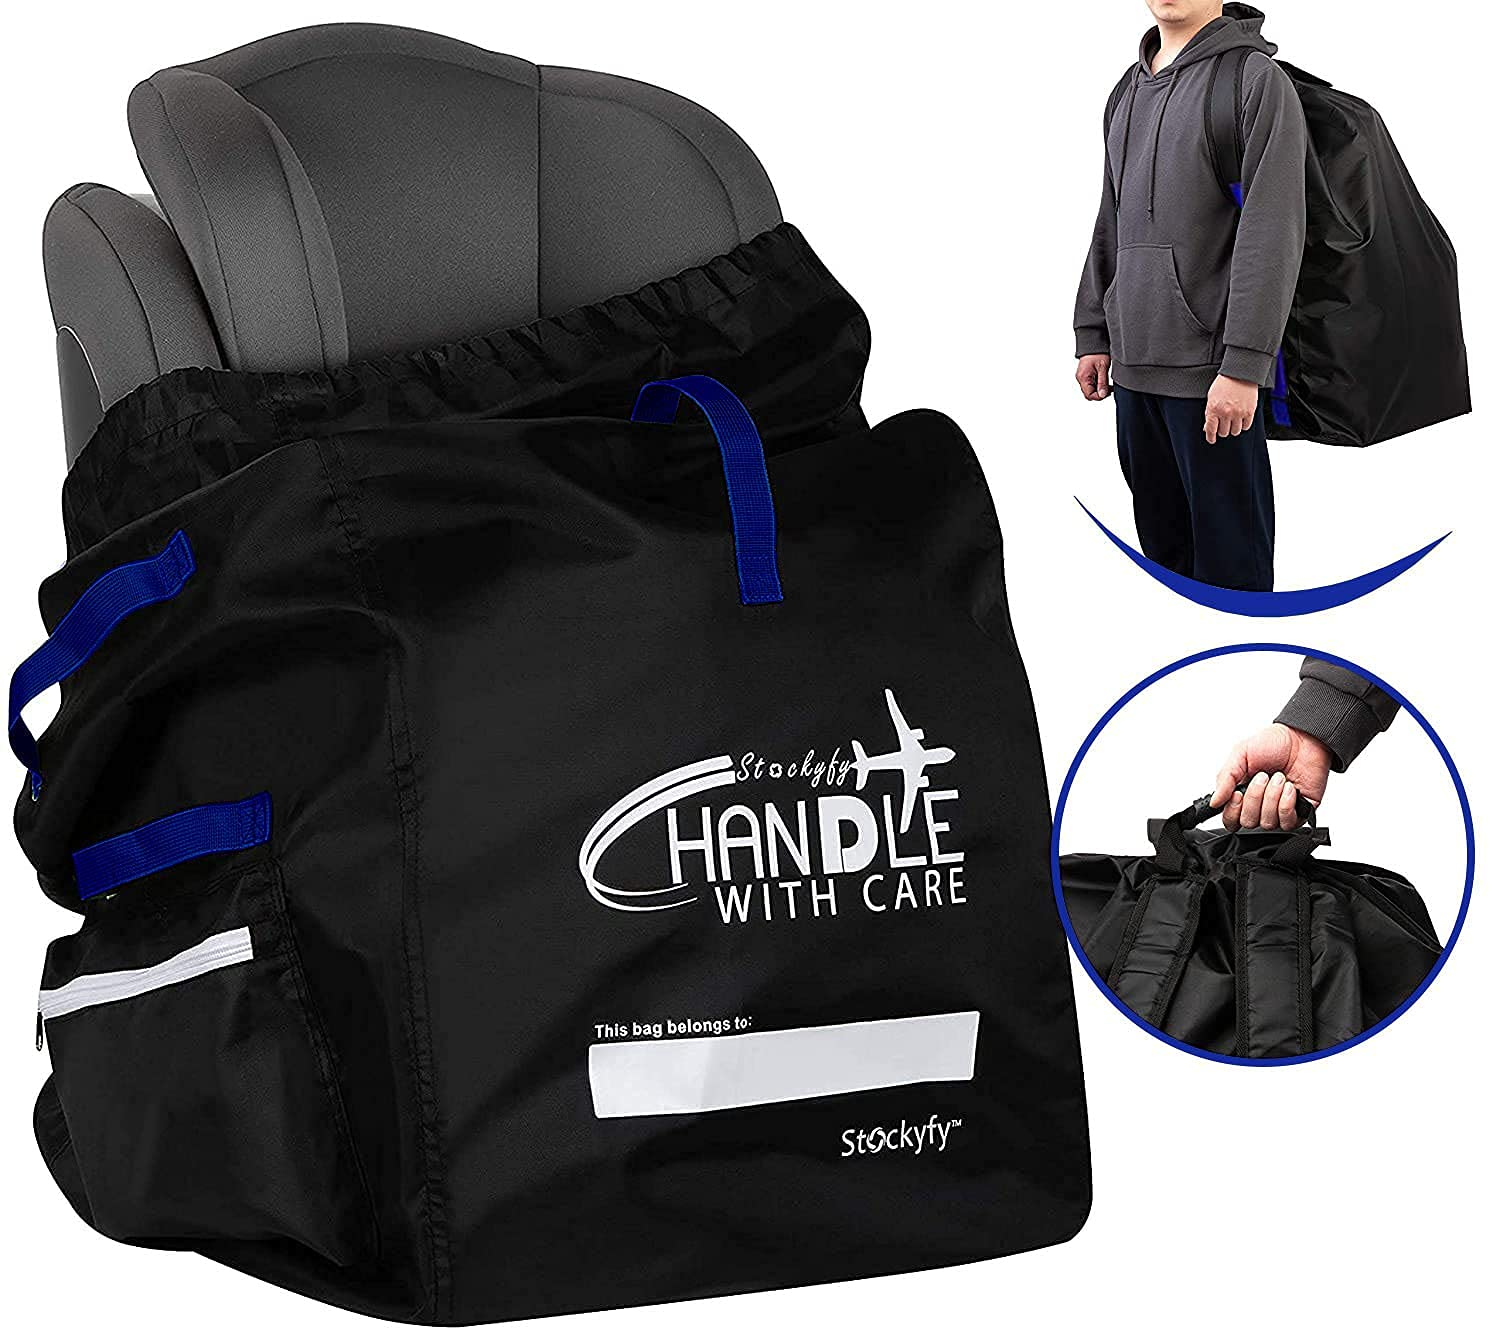 Stockyfy Car Seat Travel Bag Tucson Mall Super beauty product restock quality top! with - Pouch Blue Black Straps